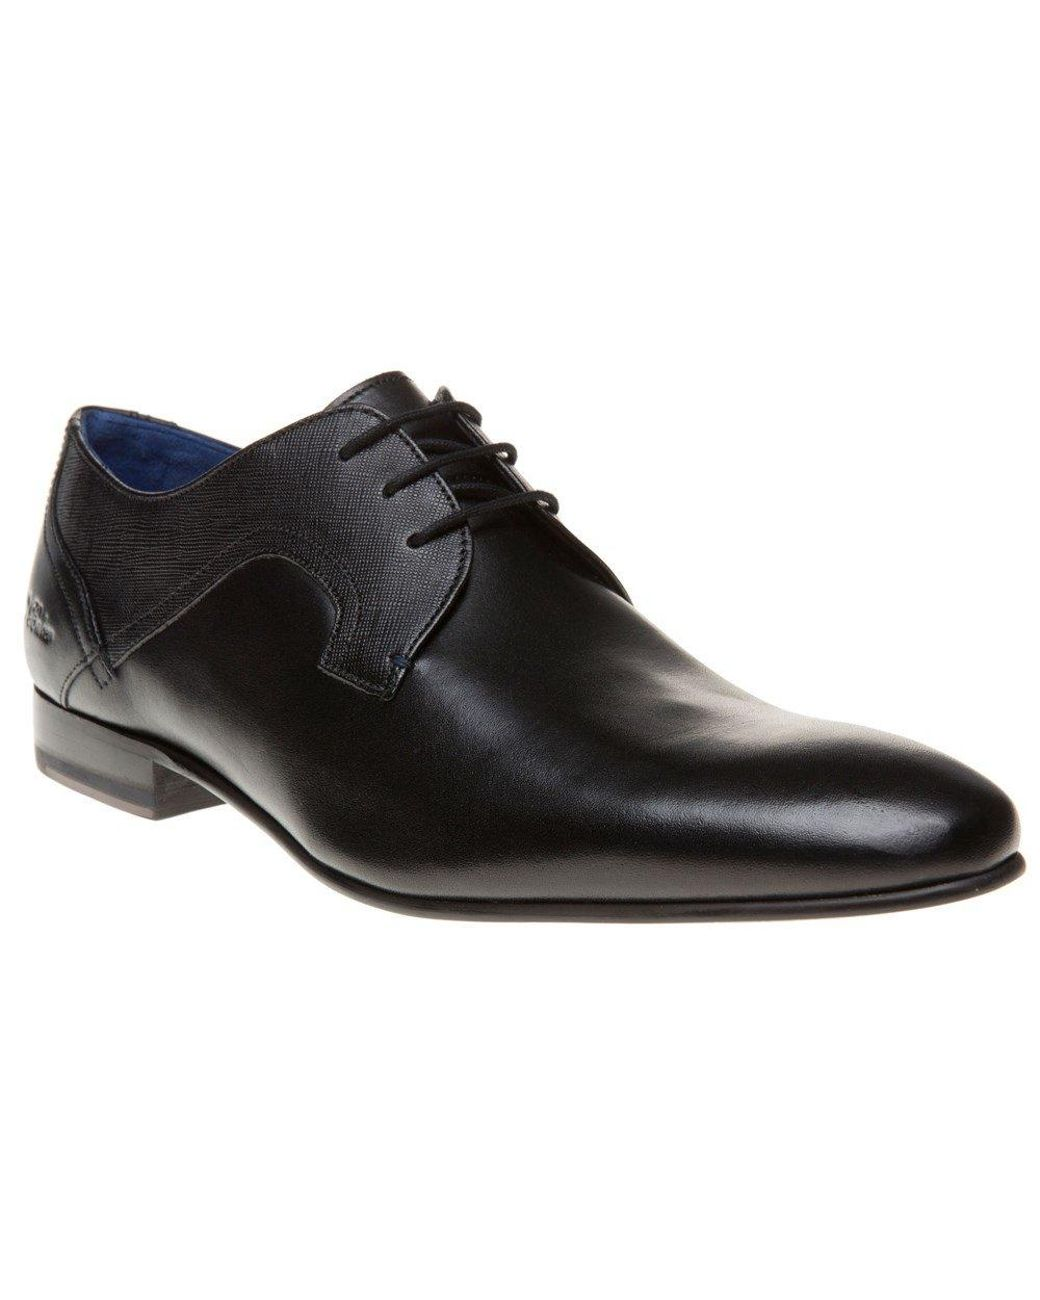 3458fe6ce81a Ted Baker Pelton Shoes in Black for Men - Lyst